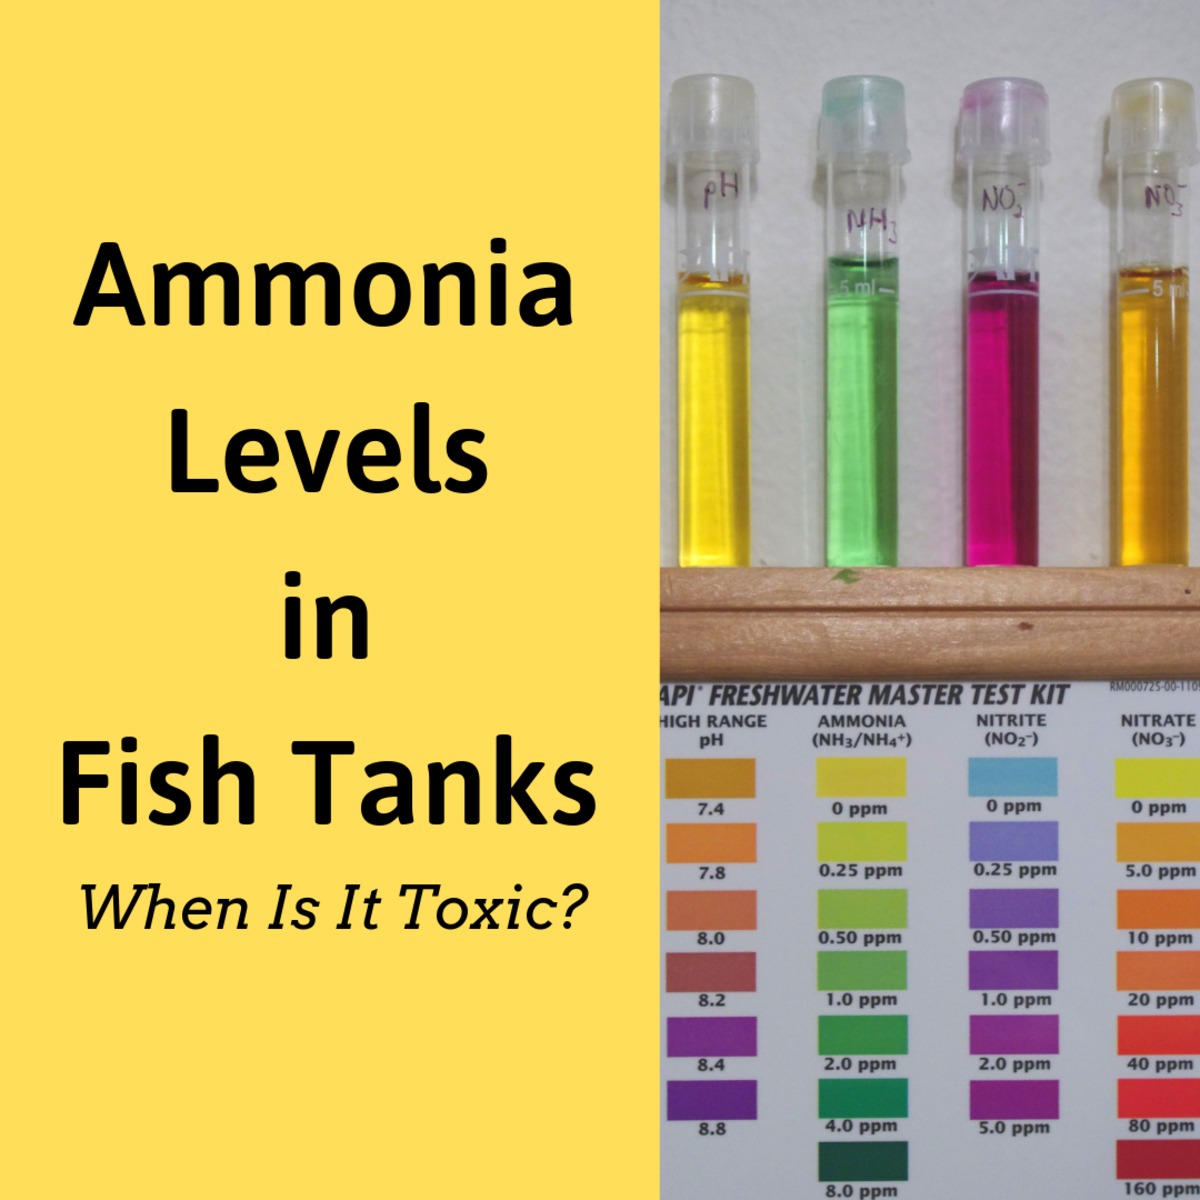 How Much Ammonia Is Toxic to Fish? (Ammonia Levels in Fish Tanks)